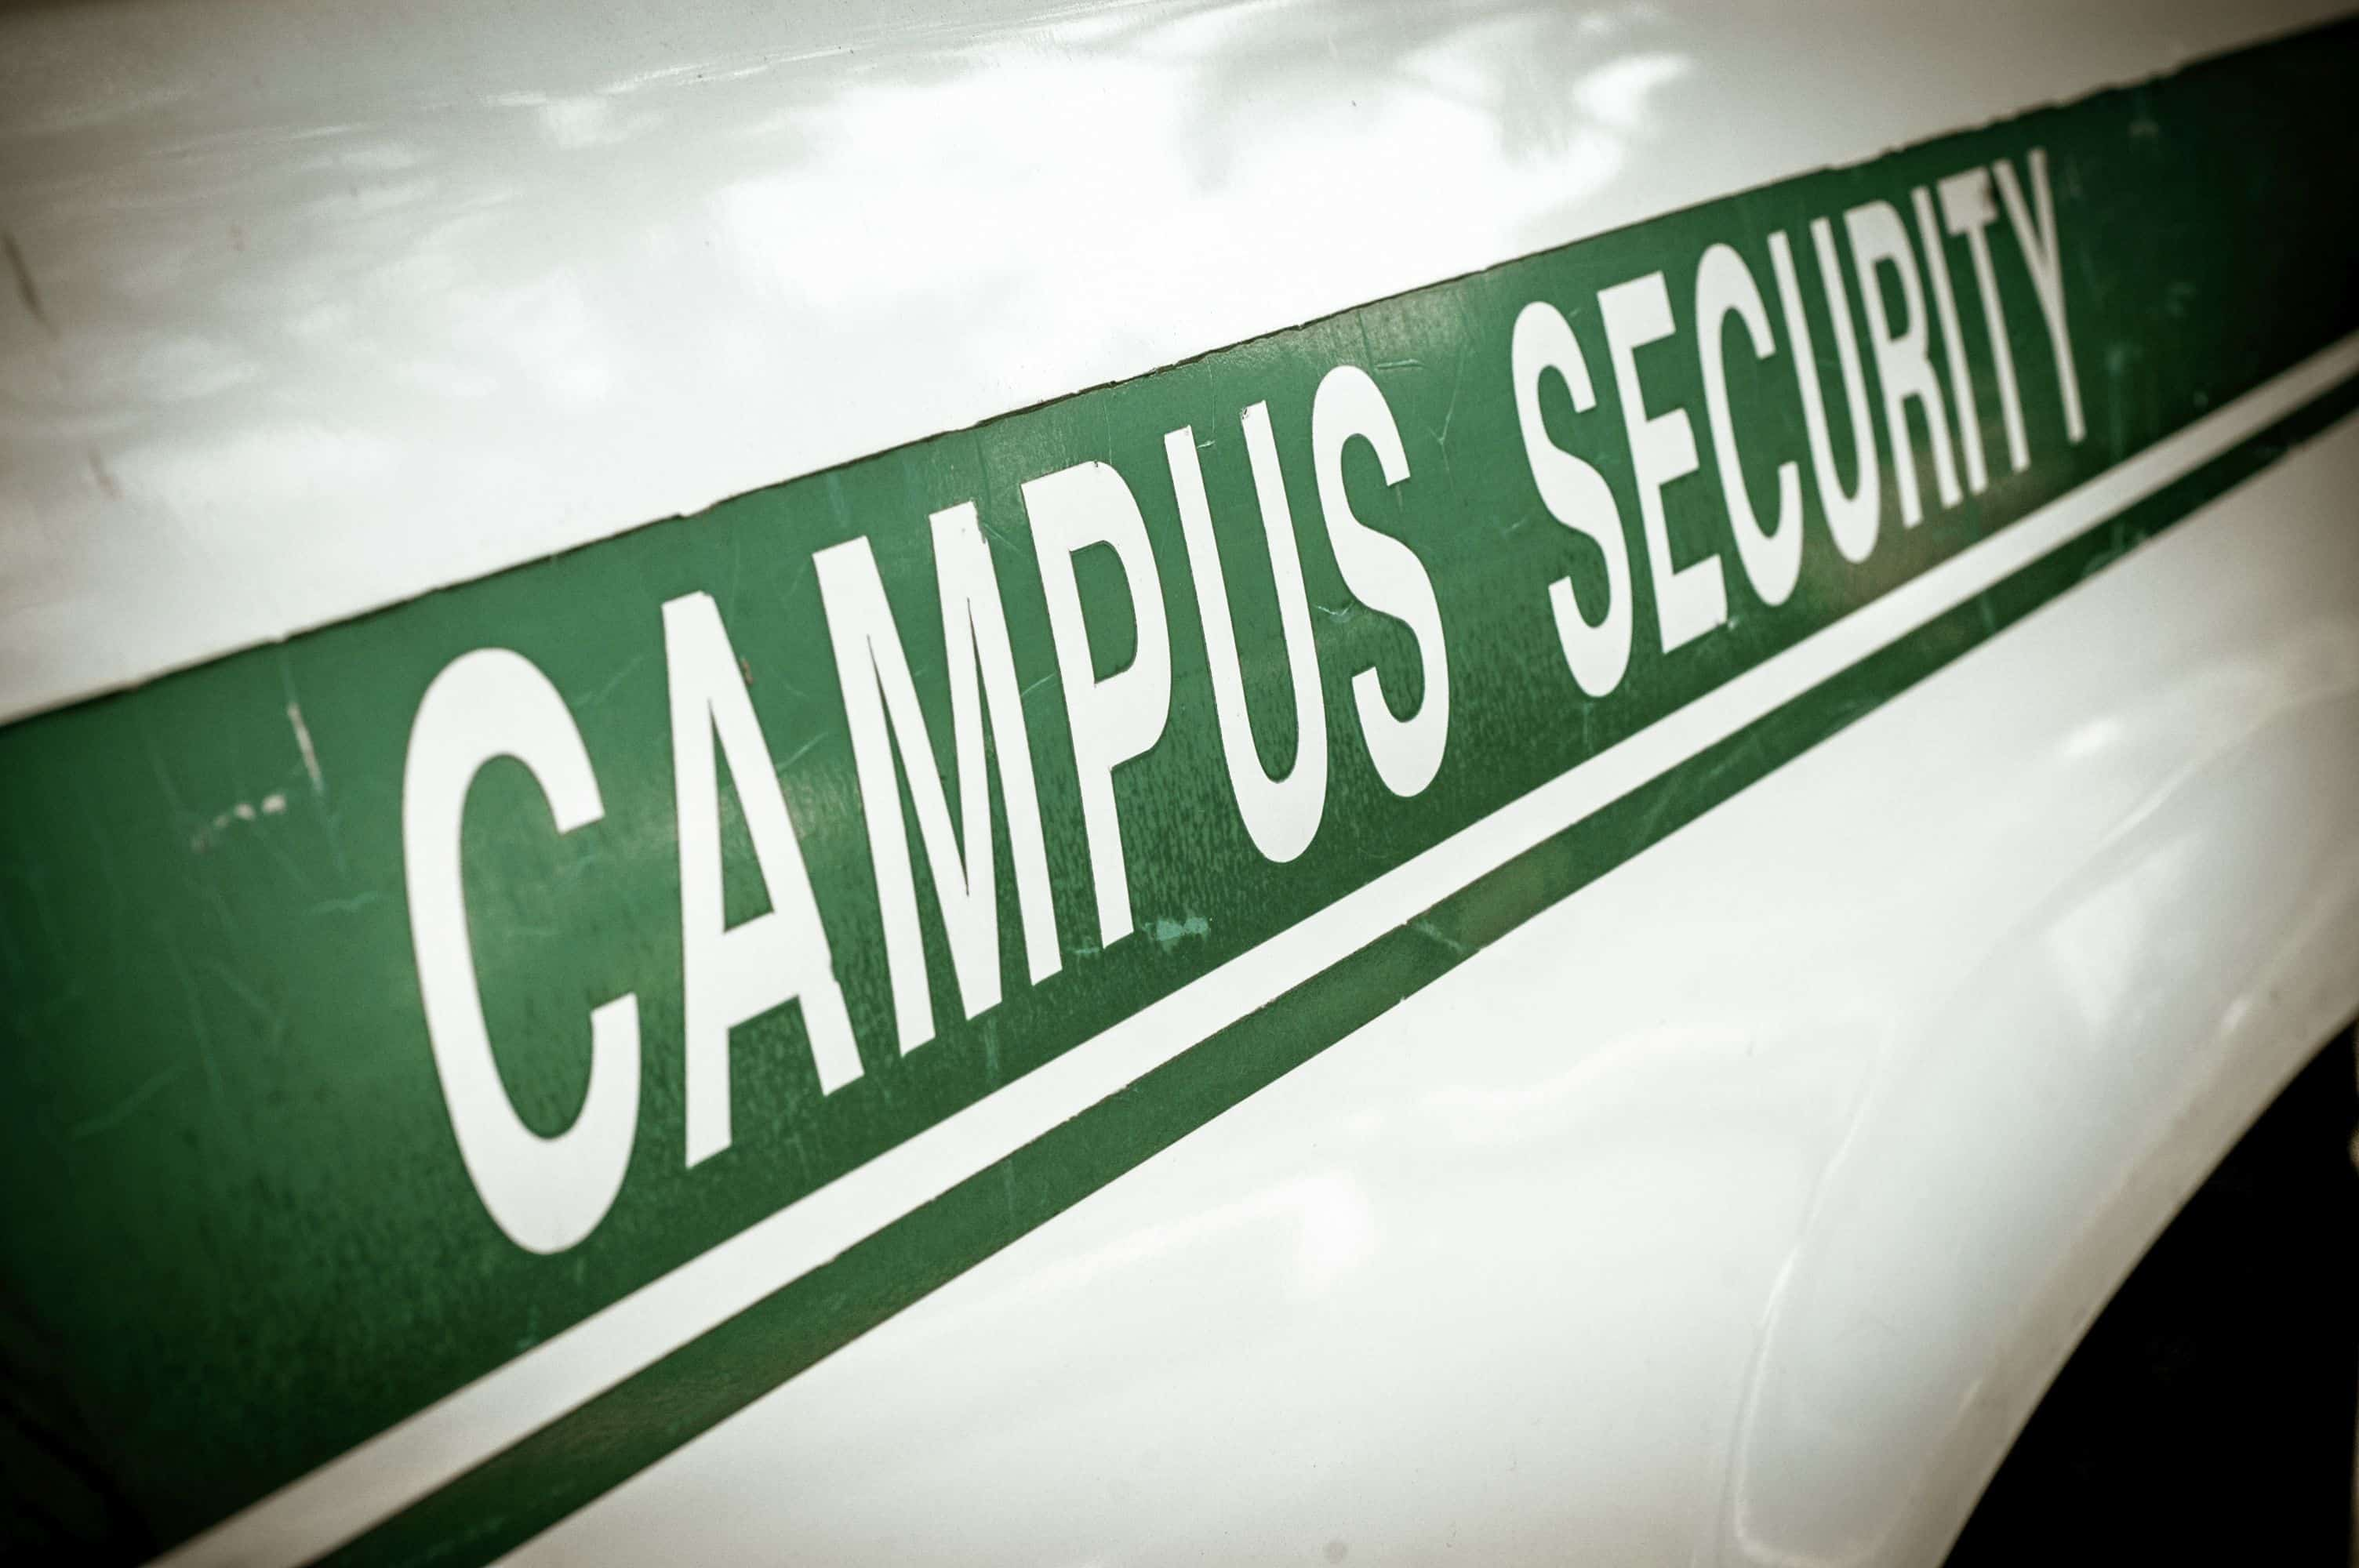 5 Trackforce Features Made to Improve Campus Security